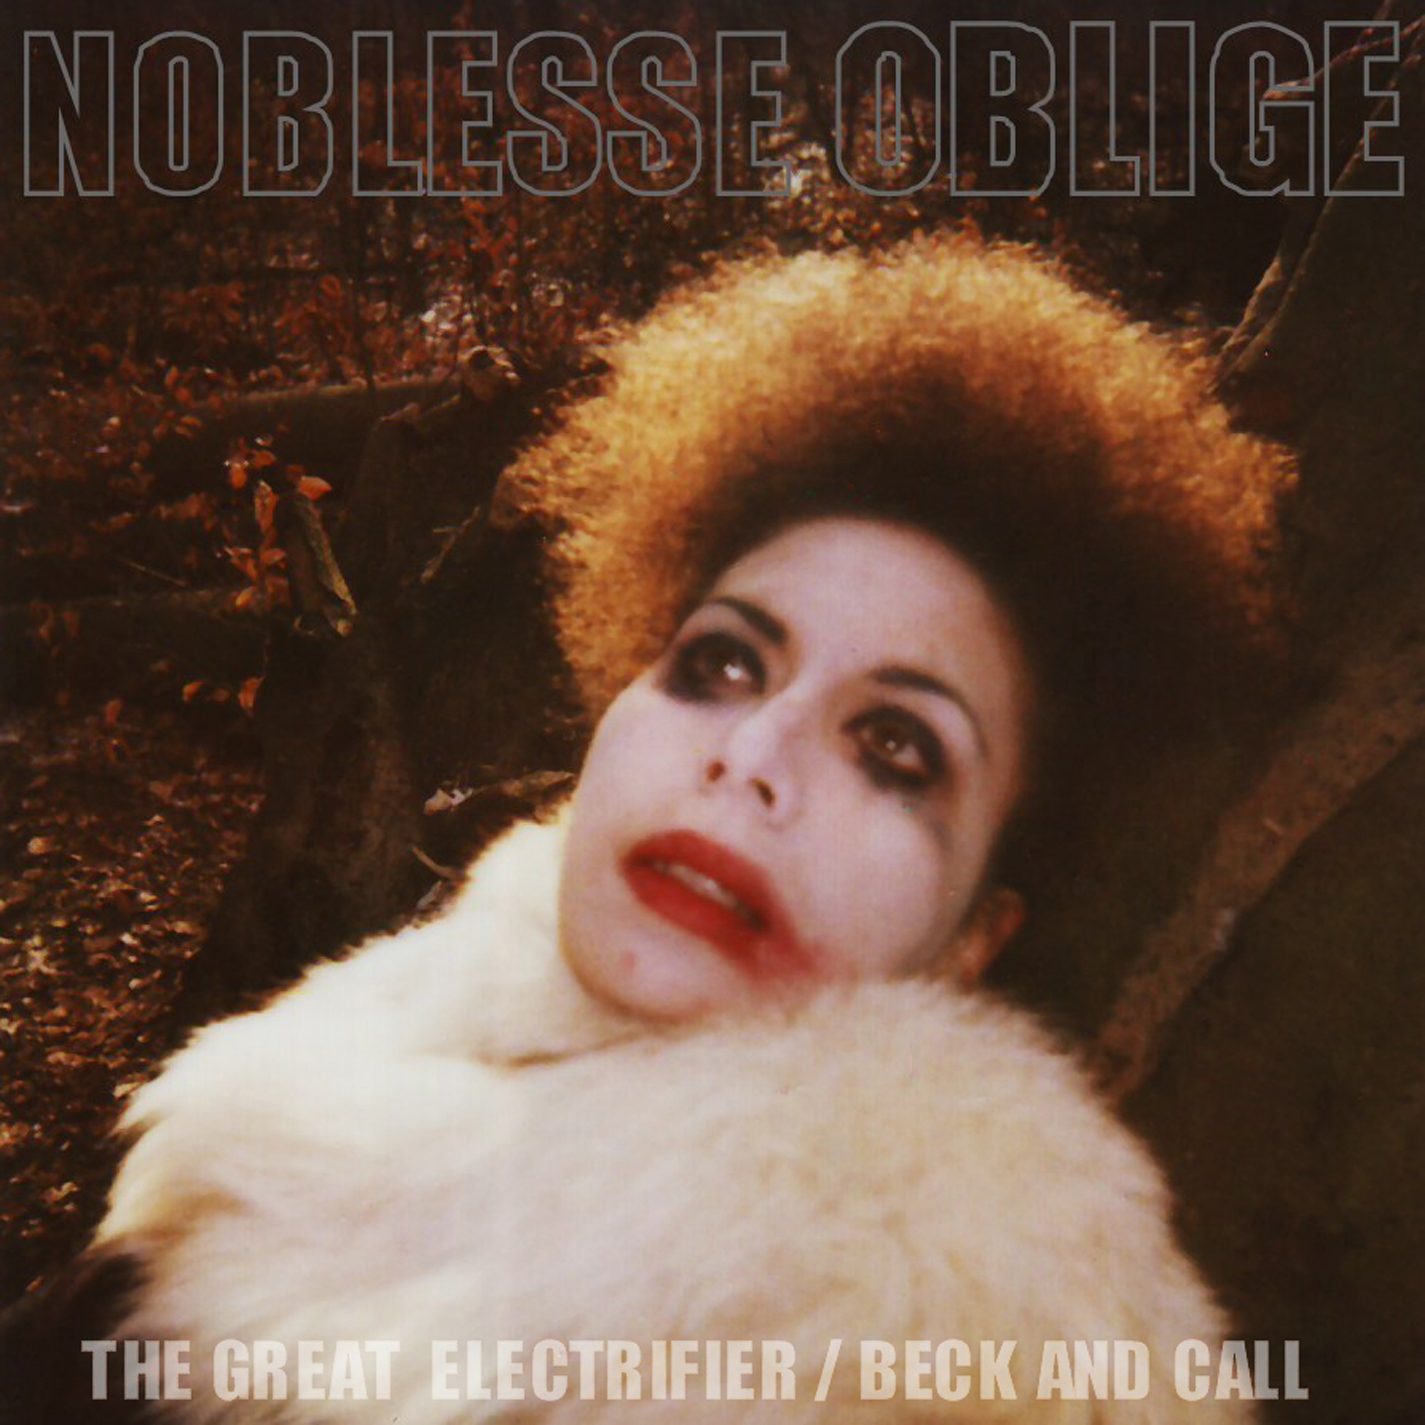 Noblesse Oblige - The Great Electrifier (Single Version)